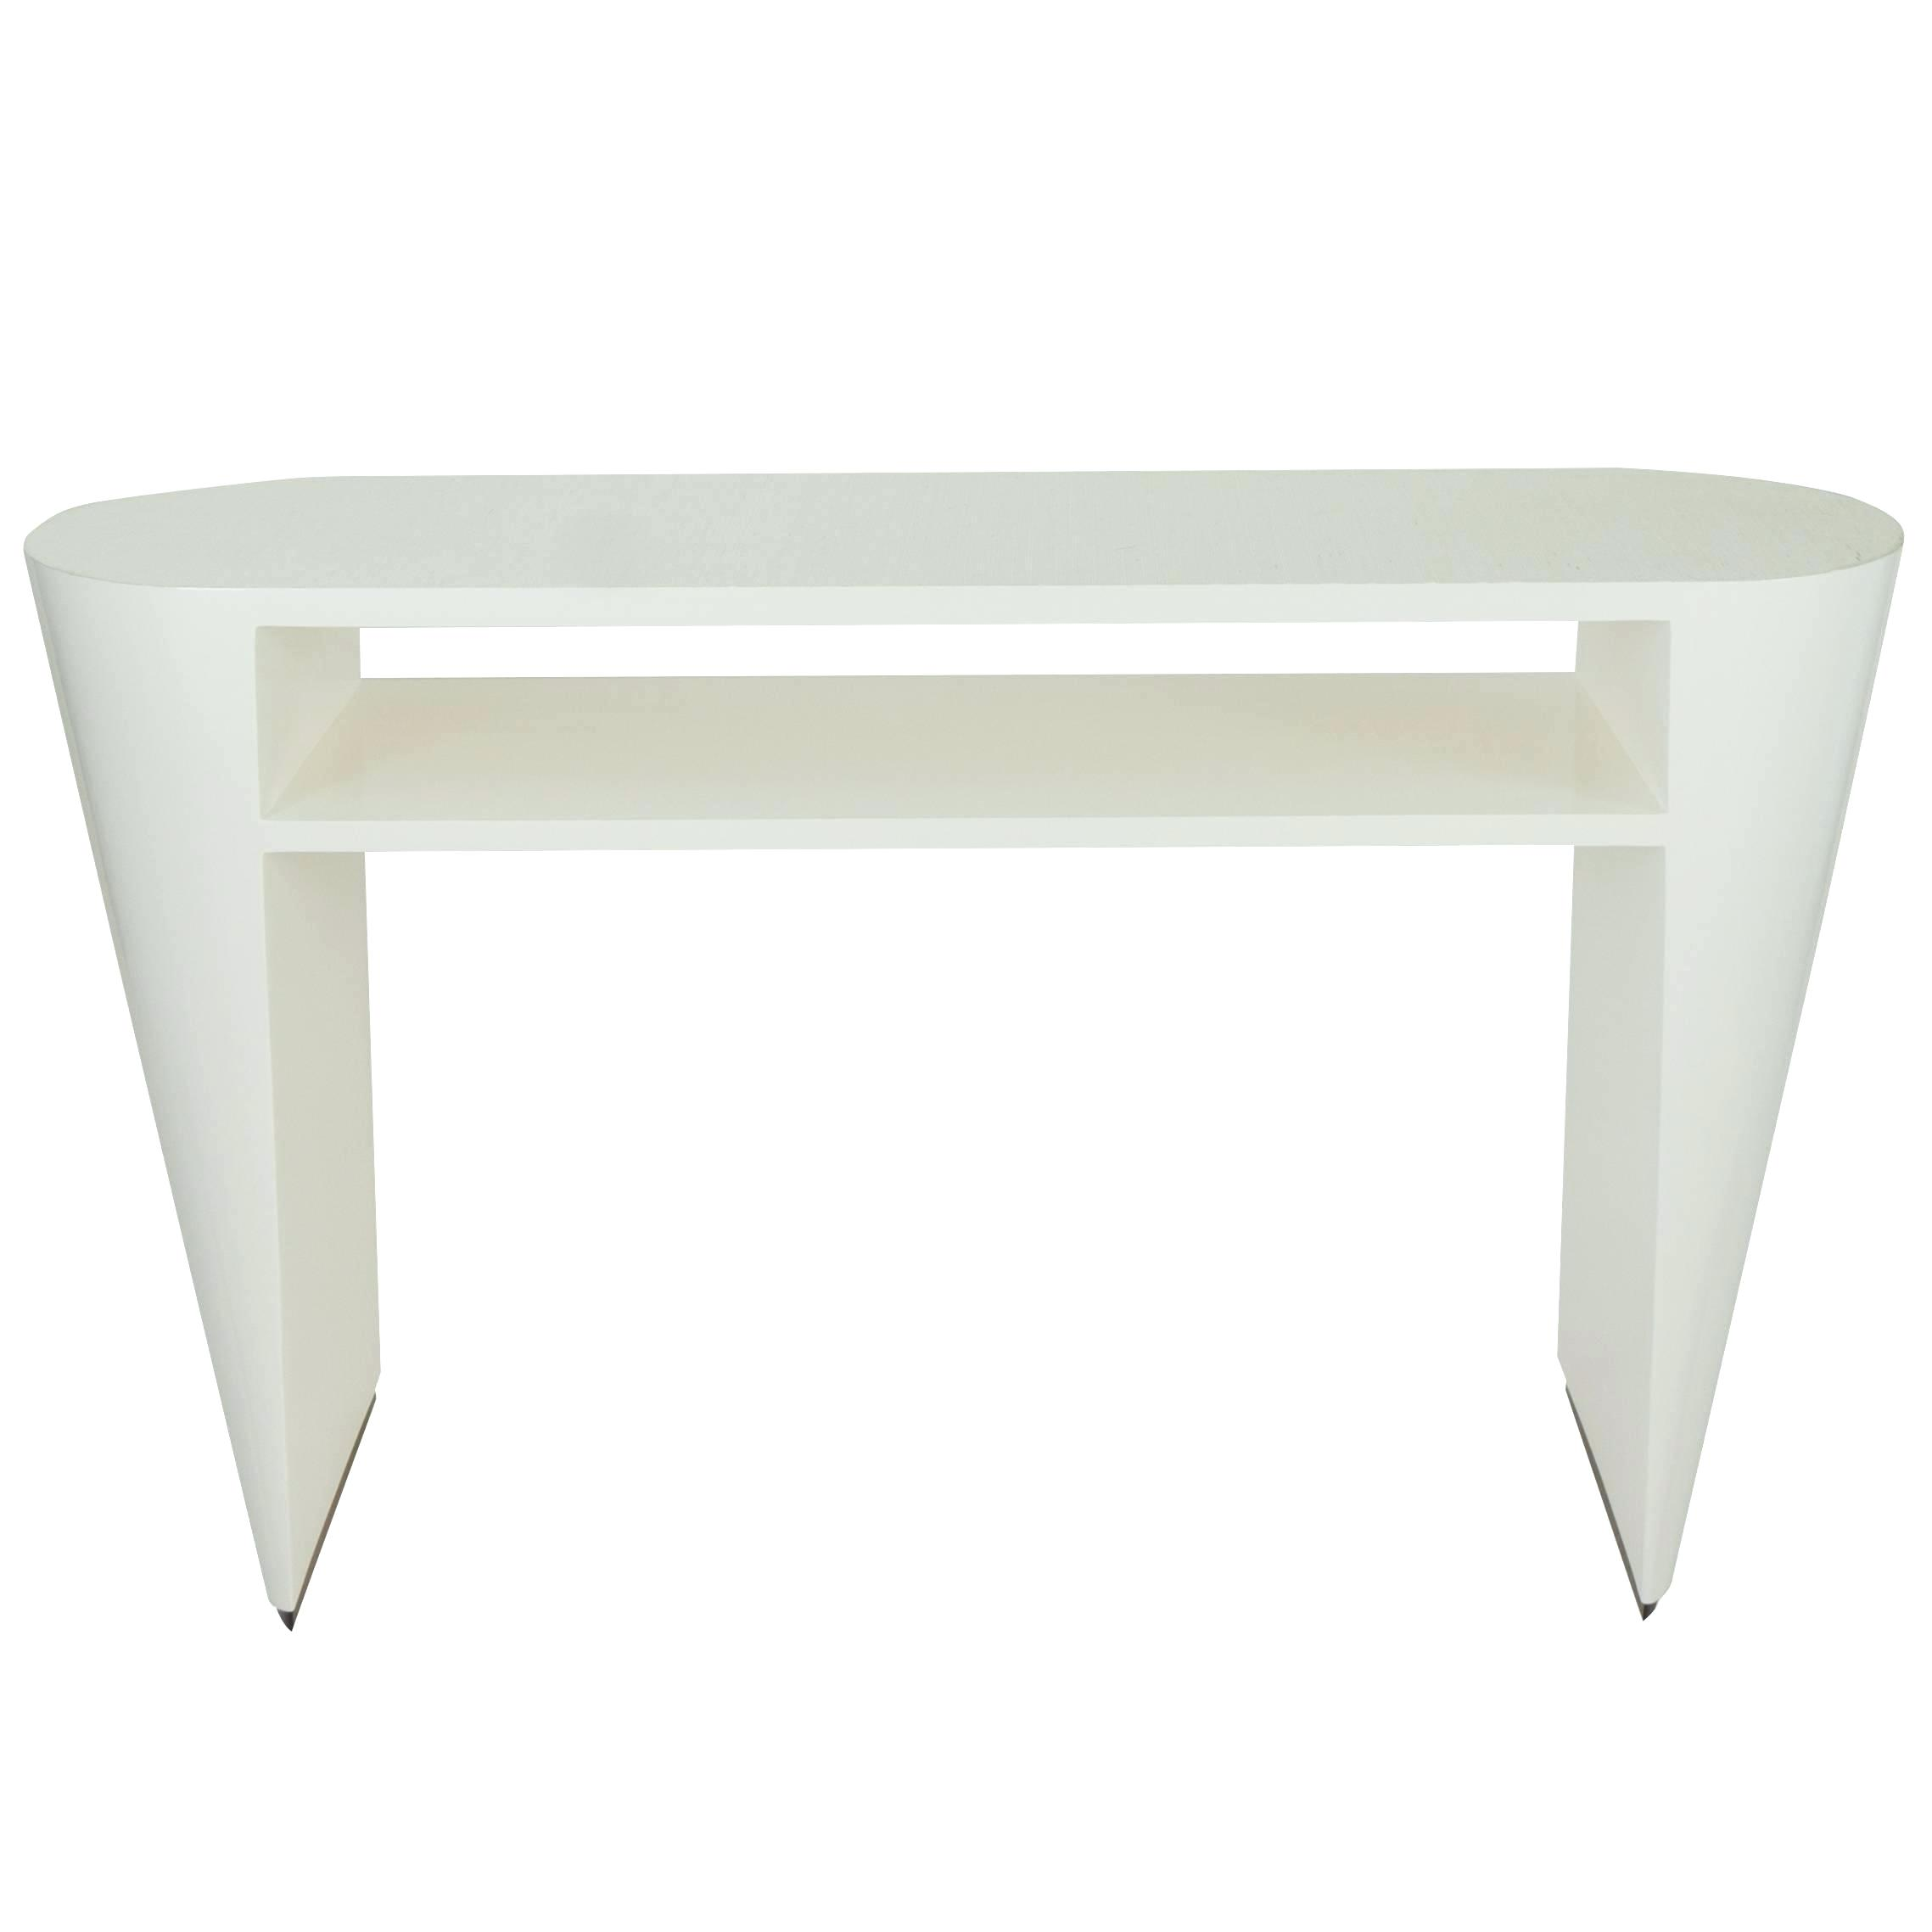 decoration white lacquer console table art lacquered with top for safavieh kayson accent asian style floor lamps antique fold out small outdoor patio set acrylic snack bath and